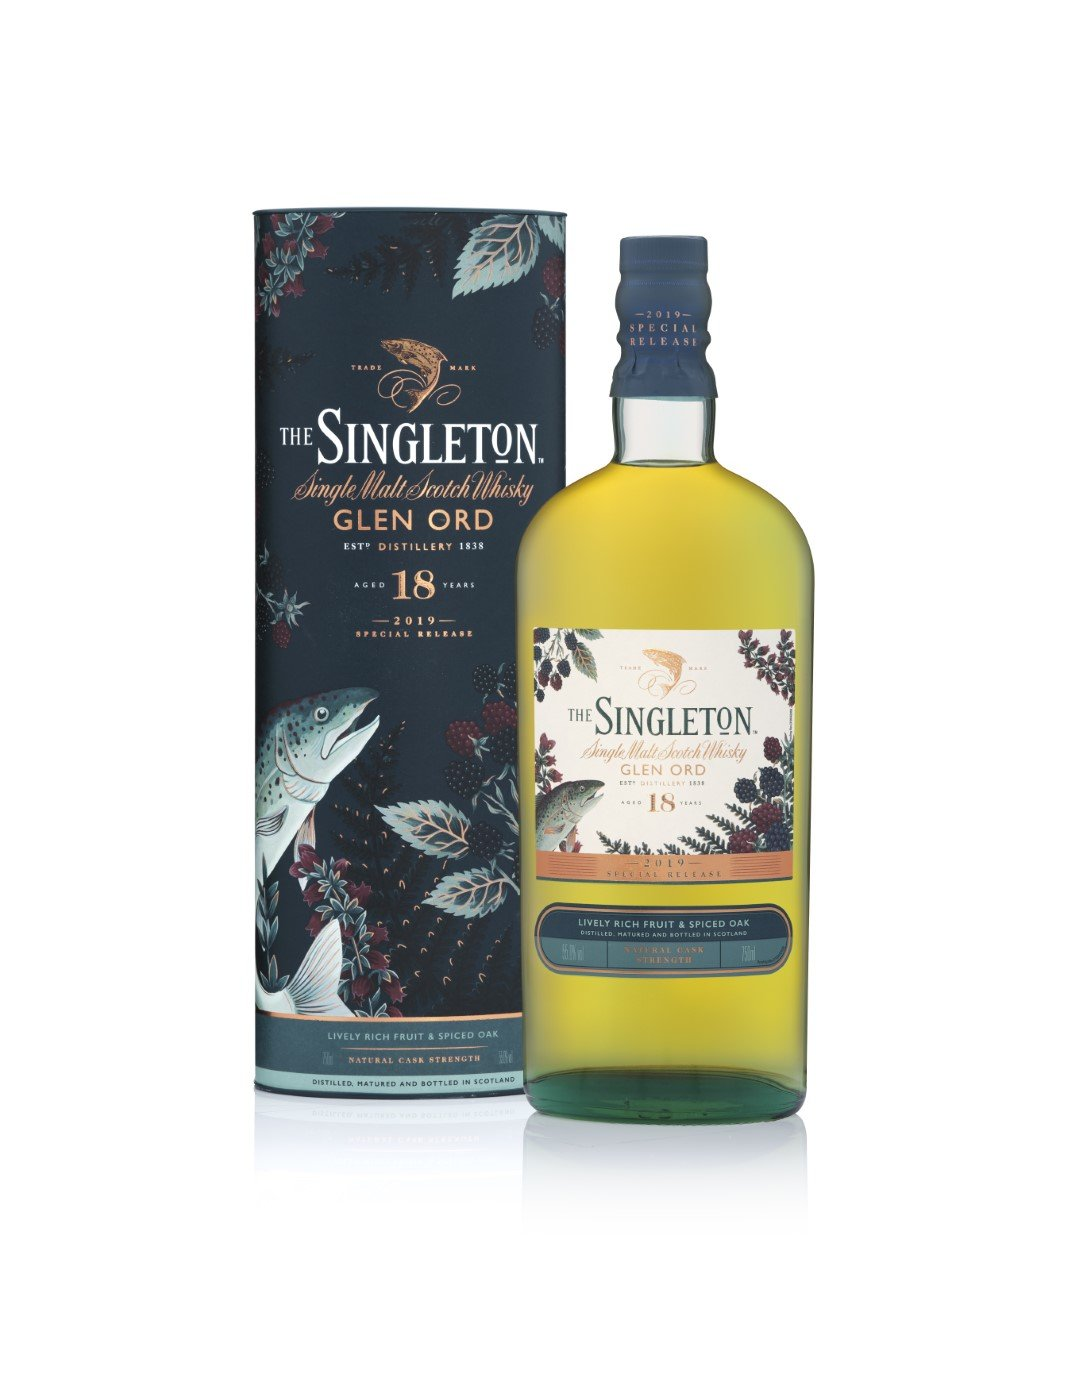 The Singleton of Glen Ord 18 Years Old Limited Edition 2019